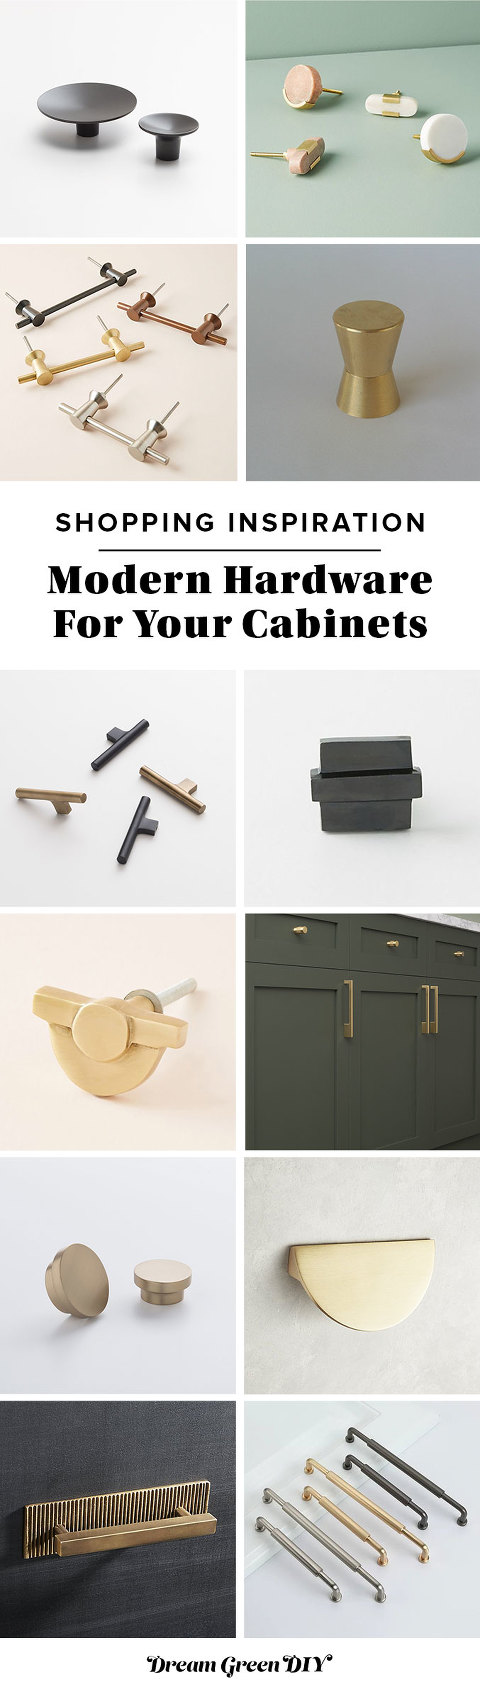 Modern Hardware For Your Cabinets